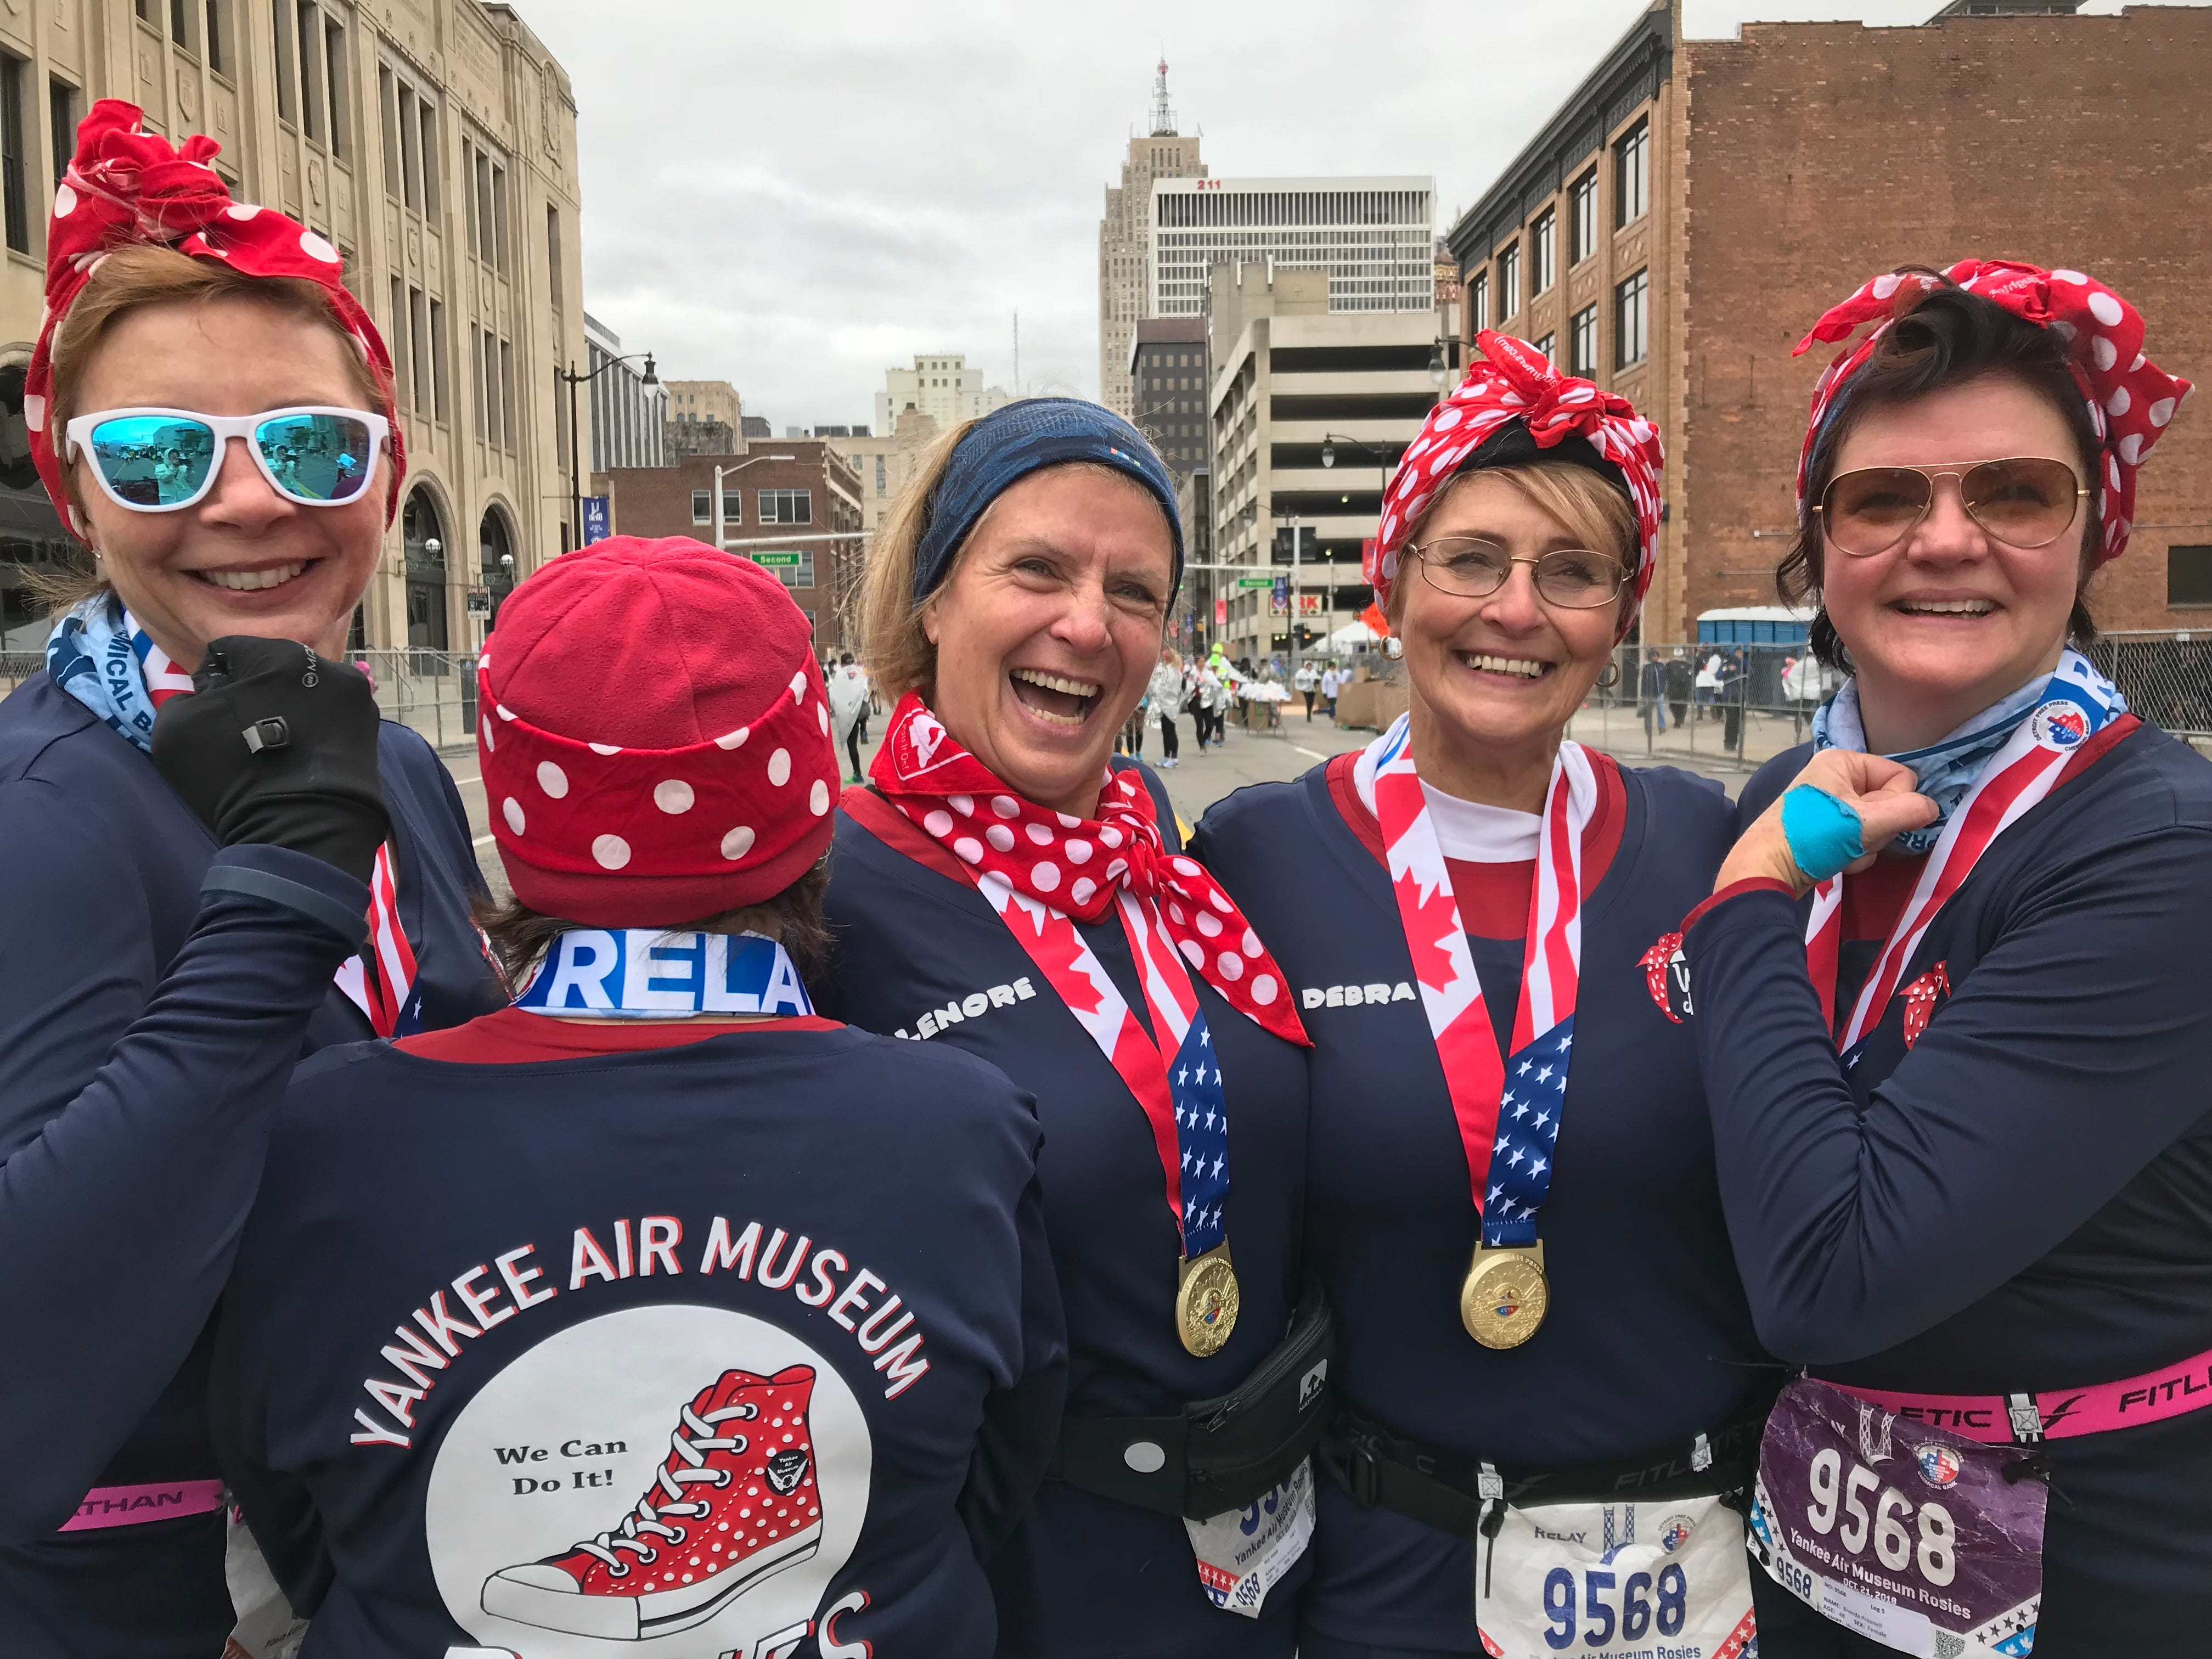 These 2018 Detroit marathon stories have all the feels